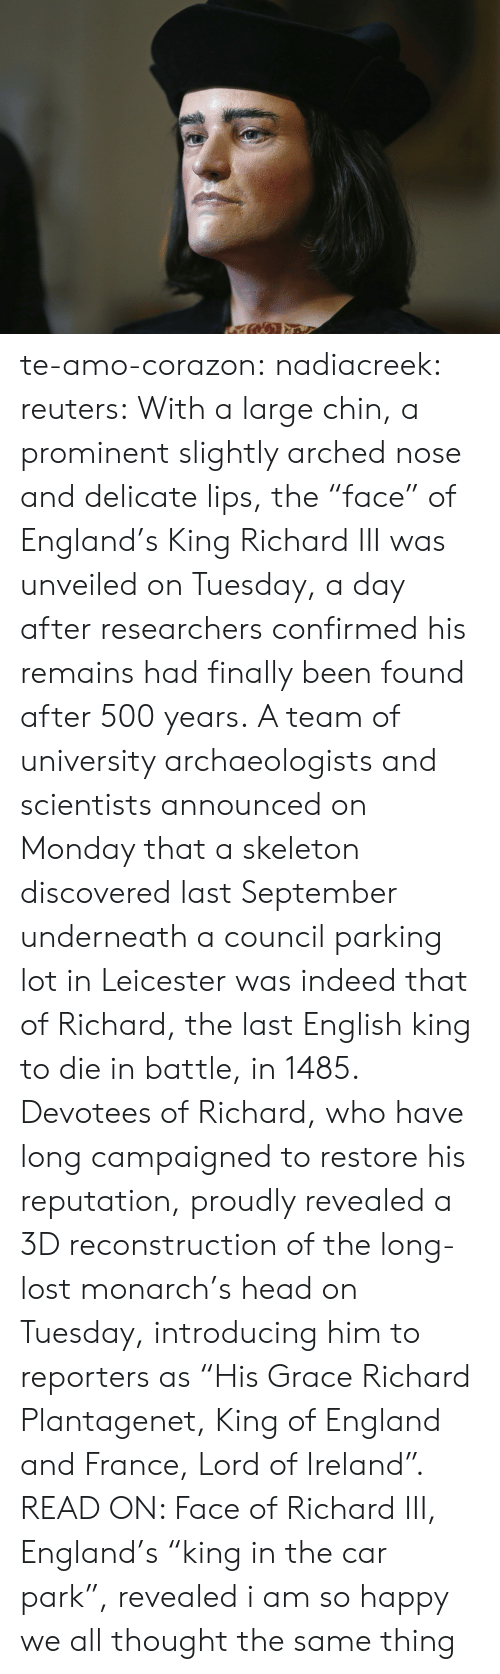 "Ireland: te-amo-corazon: nadiacreek:  reuters:  With a large chin, a prominent slightly arched nose and delicate lips, the ""face"" of England's King Richard III was unveiled on Tuesday, a day after researchers confirmed his remains had finally been found after 500 years. A team of university archaeologists and scientists announced on Monday that a skeleton discovered last September underneath a council parking lot in Leicester was indeed that of Richard, the last English king to die in battle, in 1485. Devotees of Richard, who have long campaigned to restore his reputation, proudly revealed a 3D reconstruction of the long-lost monarch's head on Tuesday, introducing him to reporters as ""His Grace Richard Plantagenet, King of England and France, Lord of Ireland"". READ ON: Face of Richard III, England's ""king in the car park"", revealed     i am so happy we all thought the same thing"